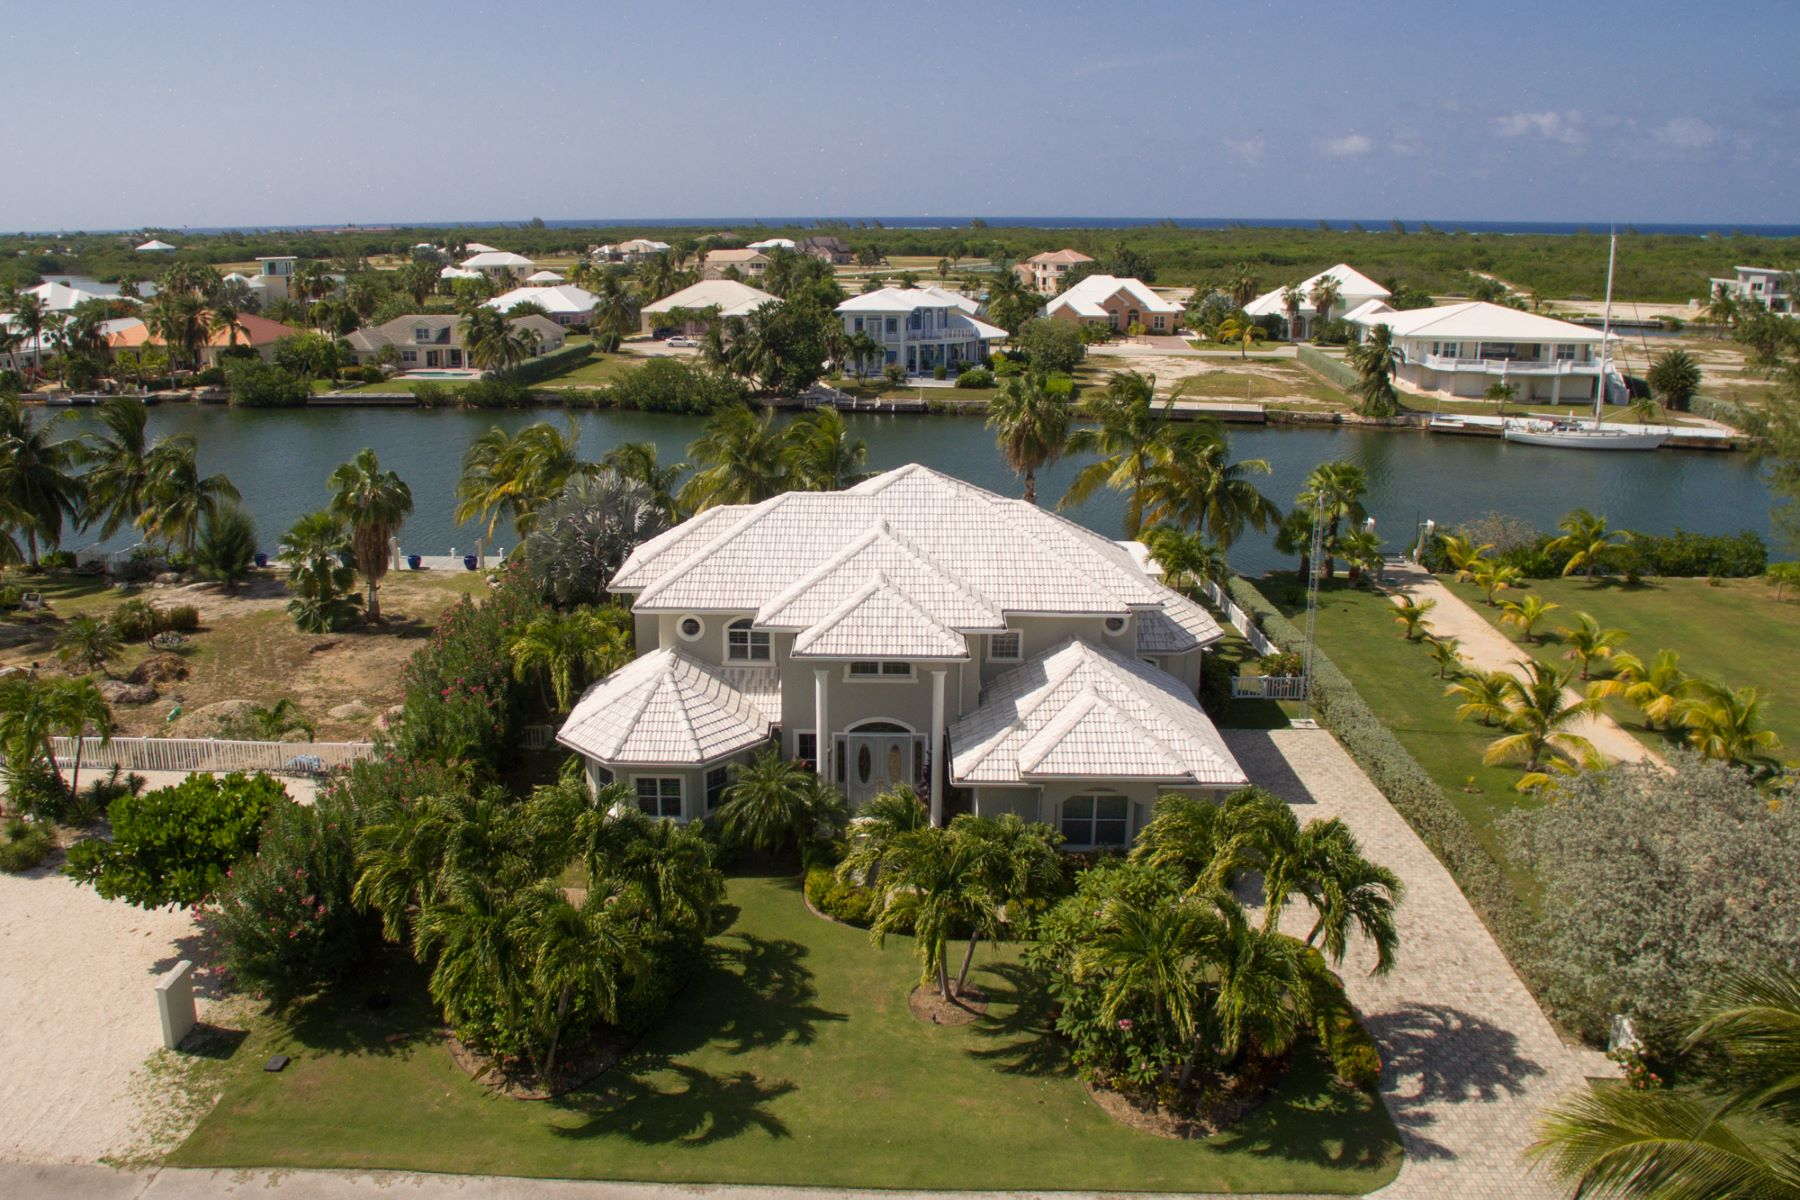 Additional photo for property listing at Canal front luxury home Shoreview Point 73 The Shores West Bay,  KY1 Cayman Islands